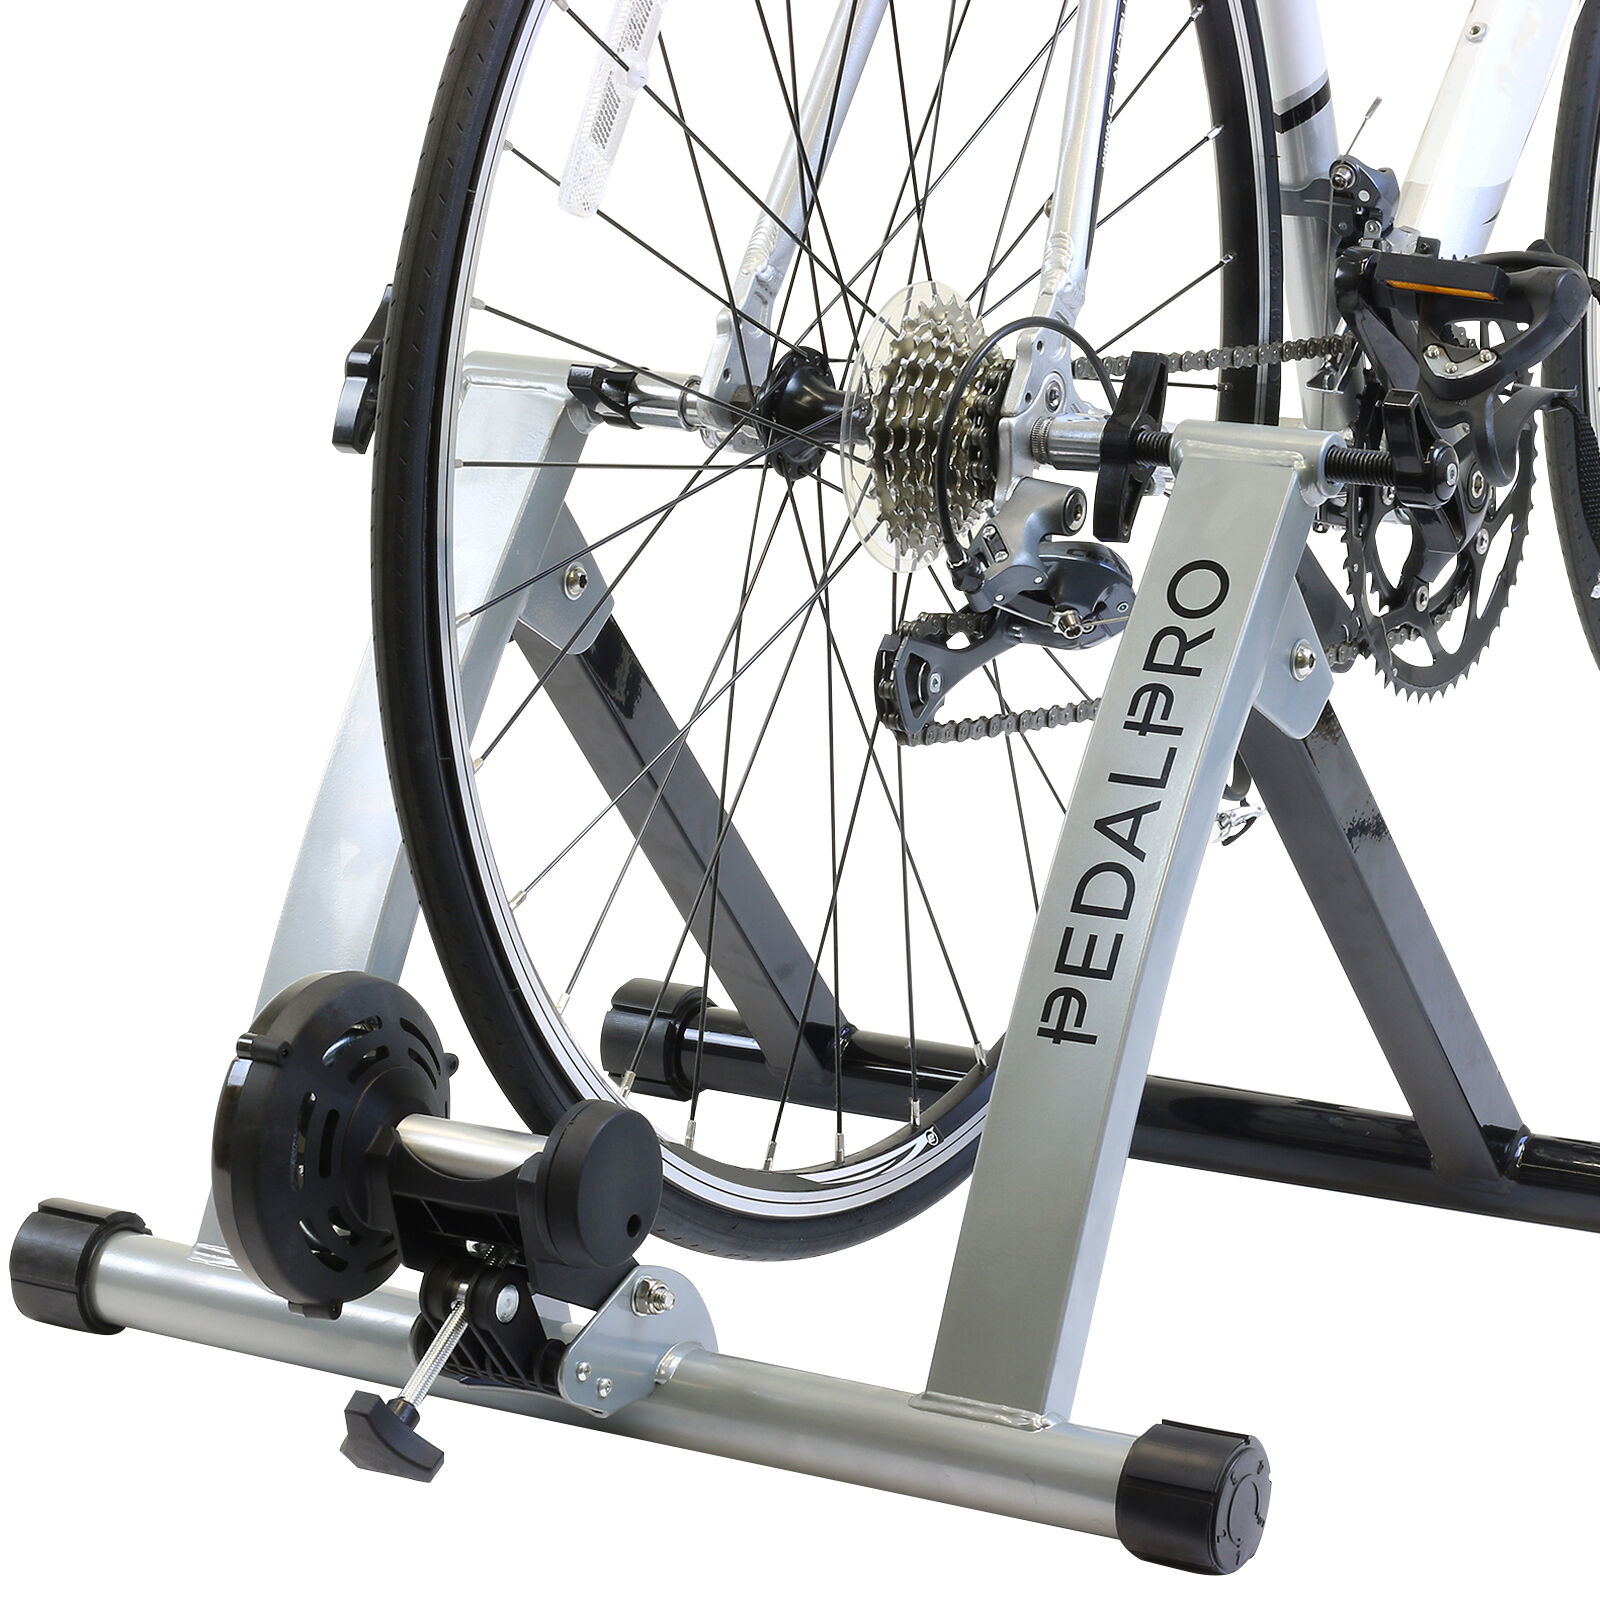 PEDALPRO TURBO TRAINER INDOOR FOLDING EXERCISE BIKE FOR CYCLE BICYCLE TRAINING